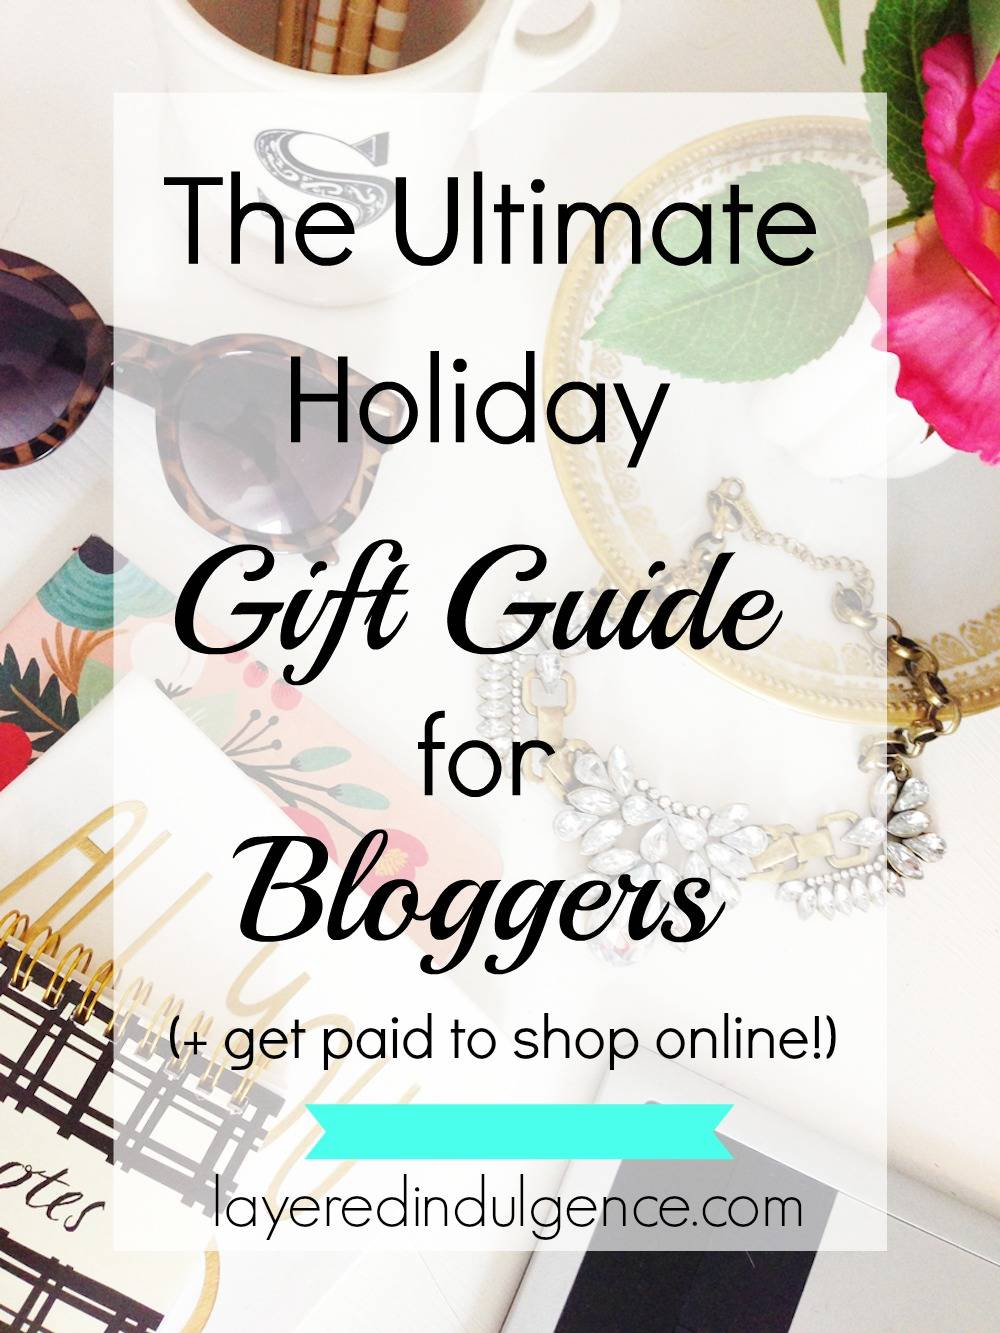 With the holiday season just around the corner, buying presents for the special ones in your life is probably high on your to do list. To ease some of the guessing games, I've put together a holiday gift guide for the blogger on your list. As a lifestyle blogger myself, I know exactly what you should get for her for Christmas. Think of it as my gift to you. Click through to check out the ultimate holiday gift guide for bloggers and save it to share with your friends!